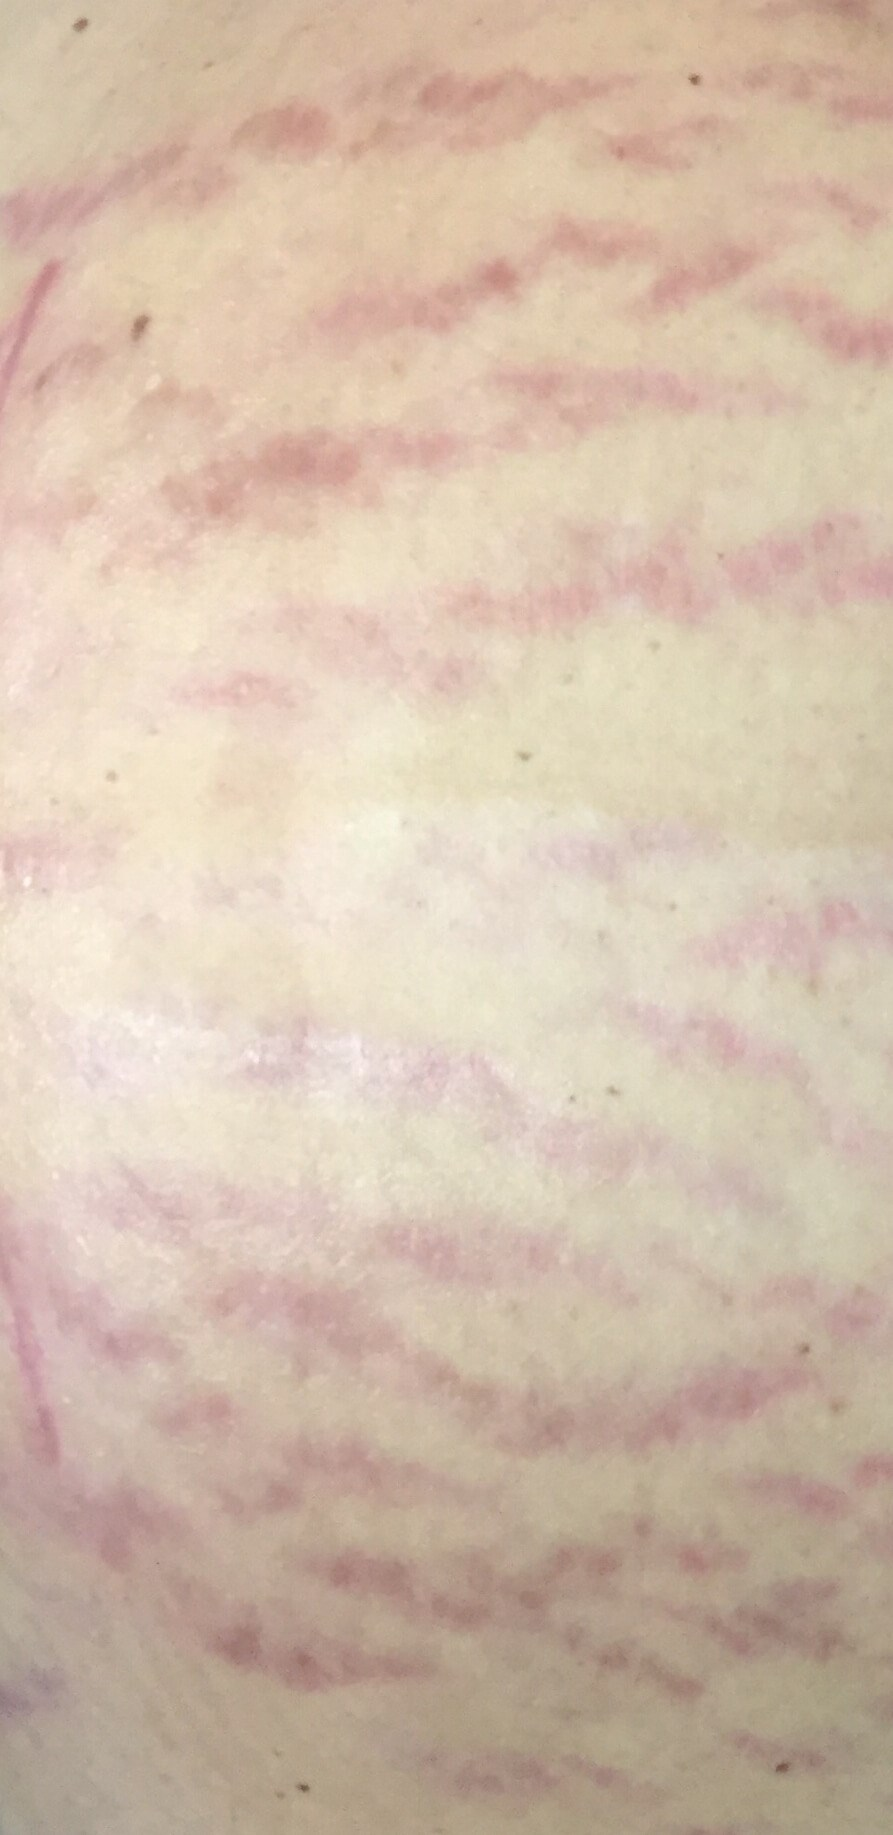 MicroNeedling of Stretch Marks Stretch Marks Before MicroPen